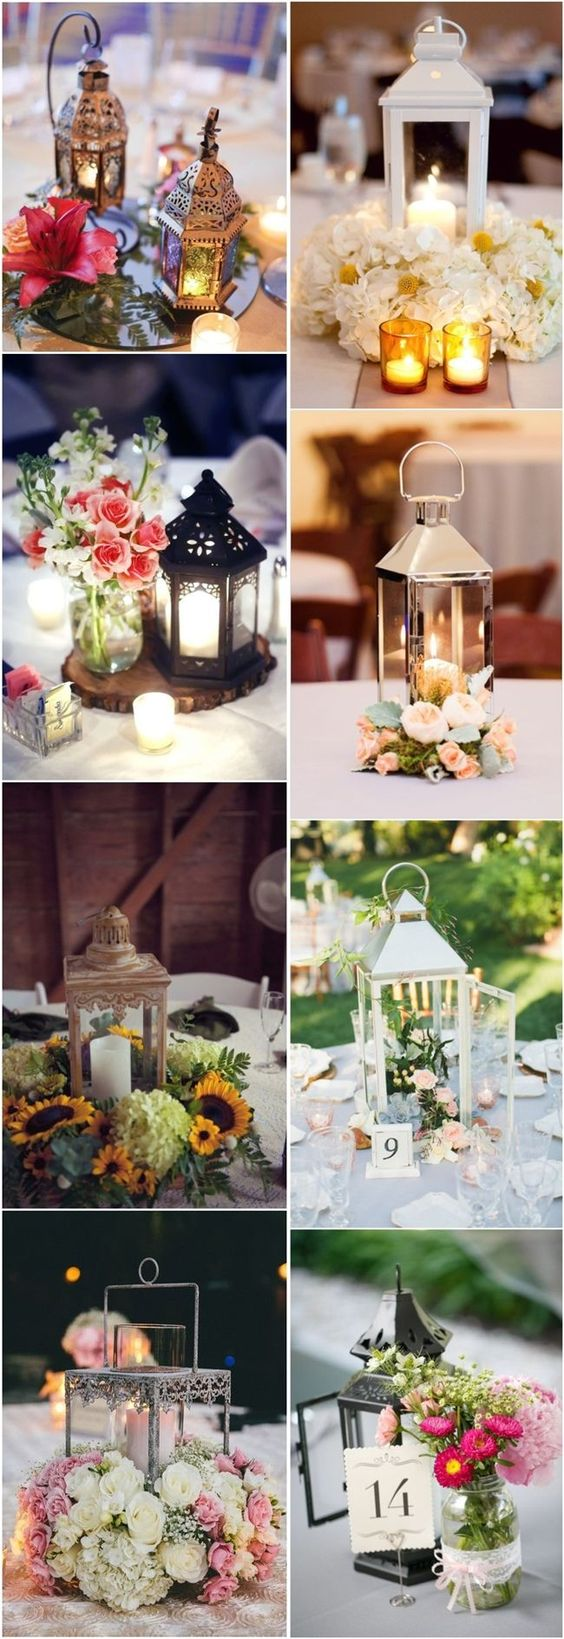 lantern wedding decors- lantern wedding centerpieces